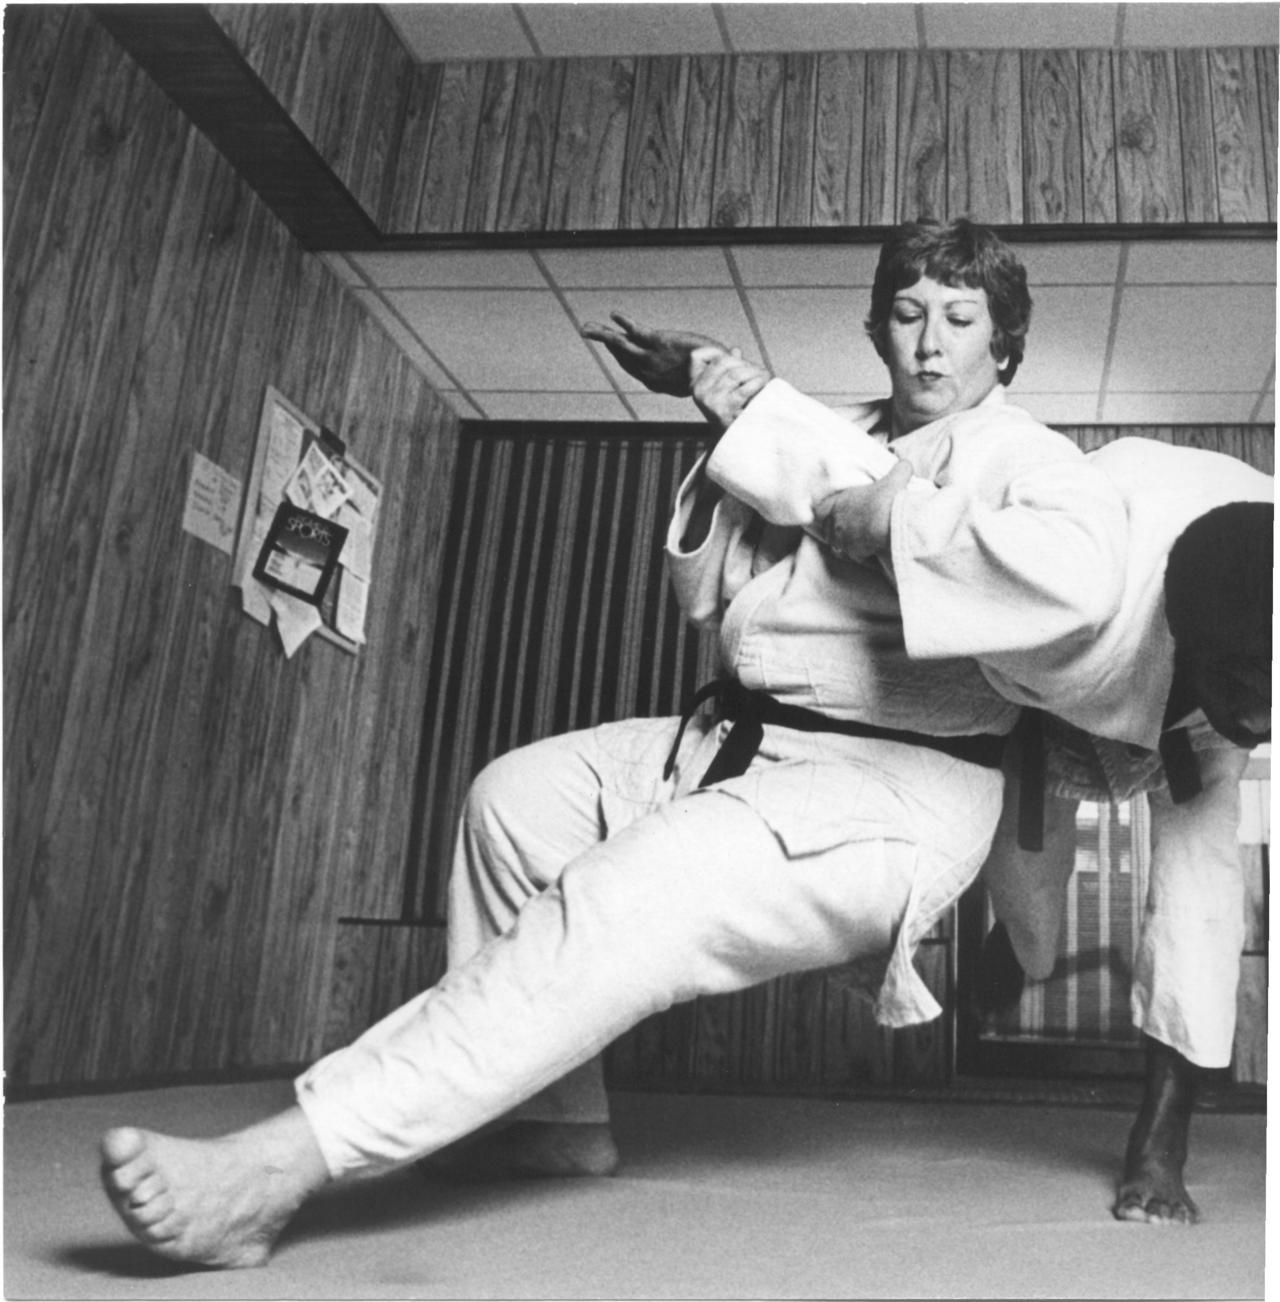 Rusty Kanokogi Teaching Judo